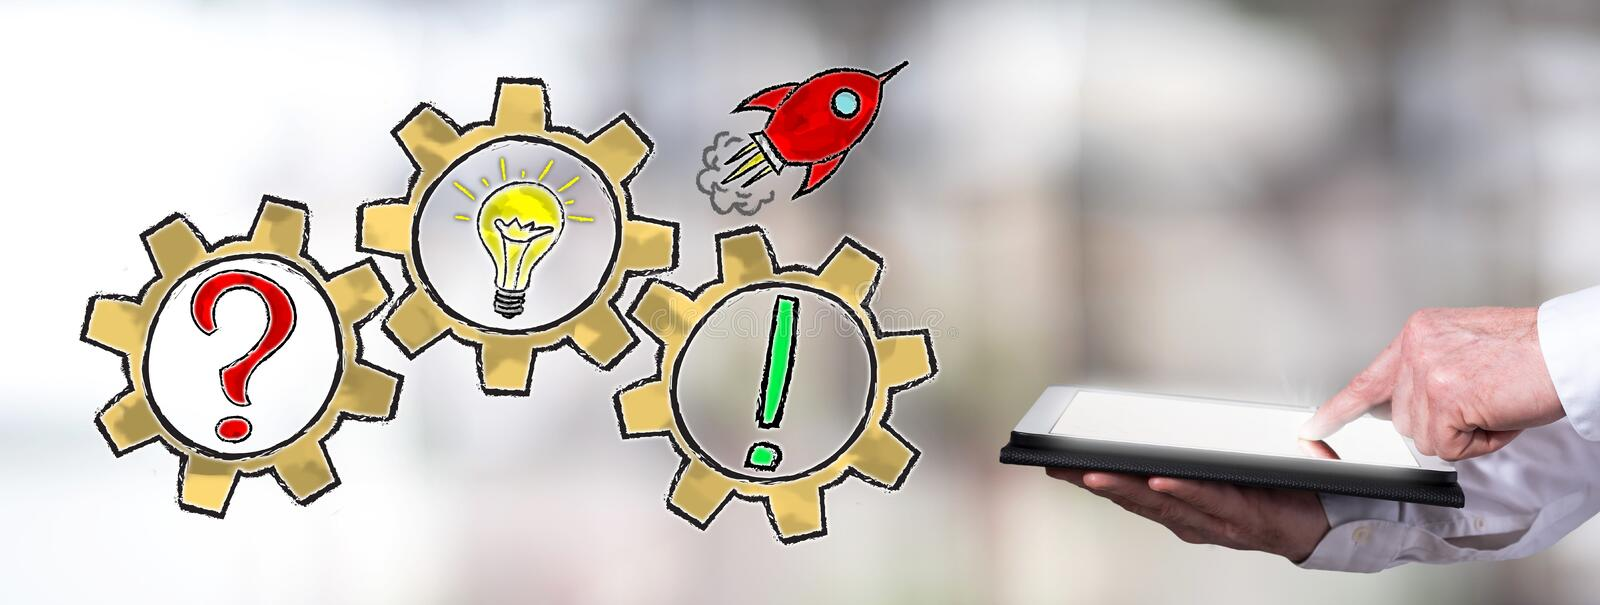 Problem solving concept with man using a tablet stock images